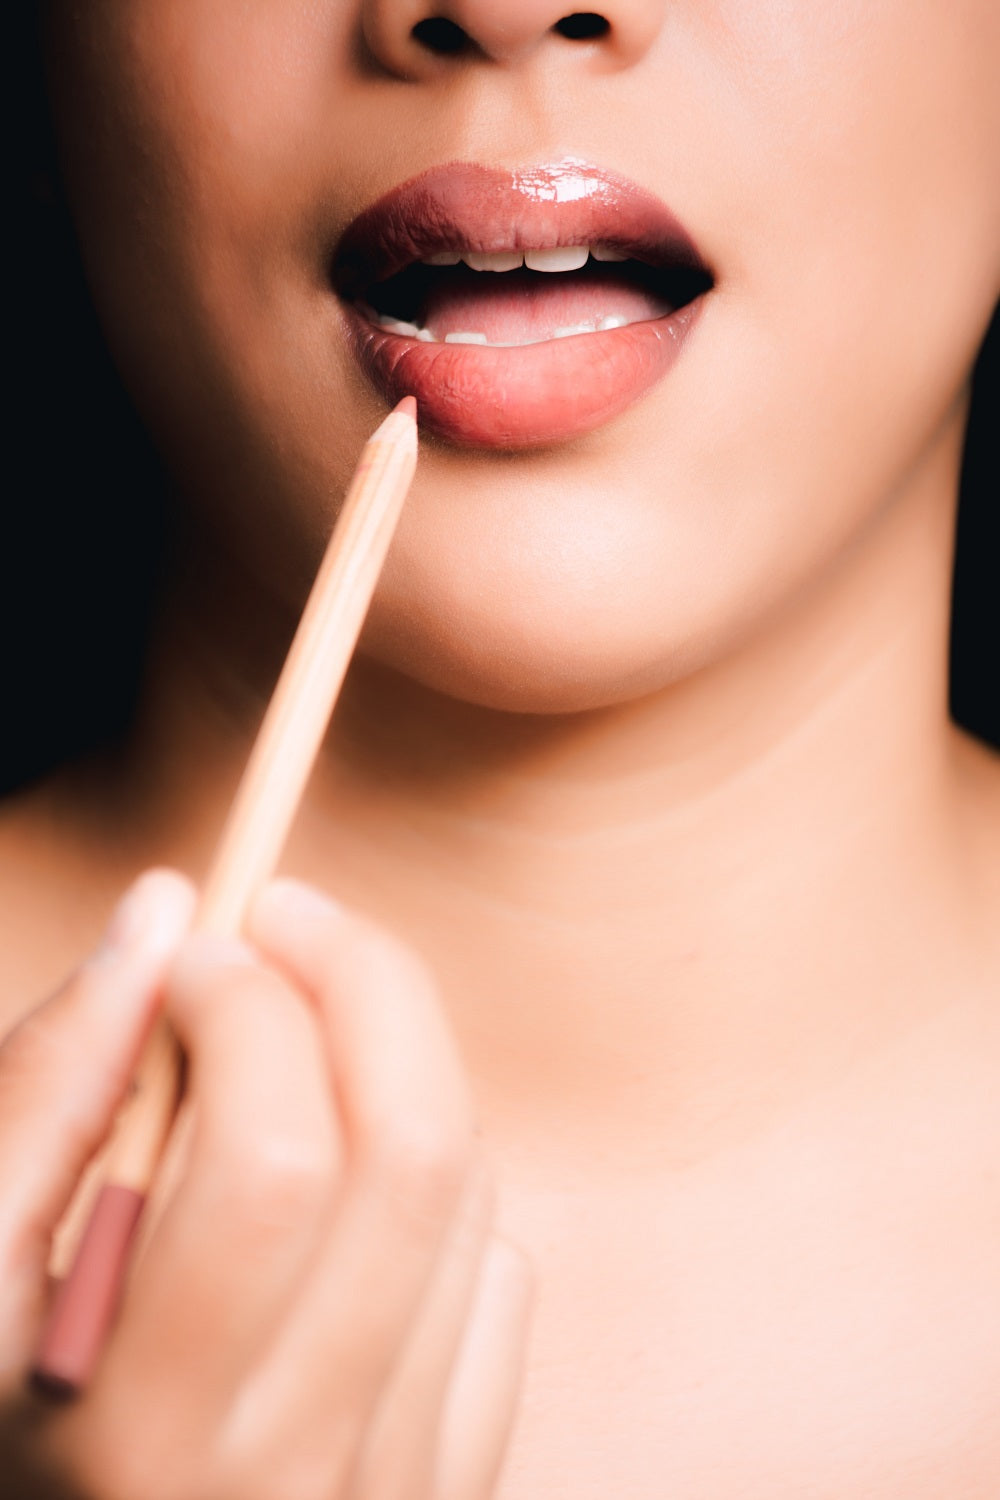 How to Make Your Lips Pop - Tips for Juicy, Plump Lips